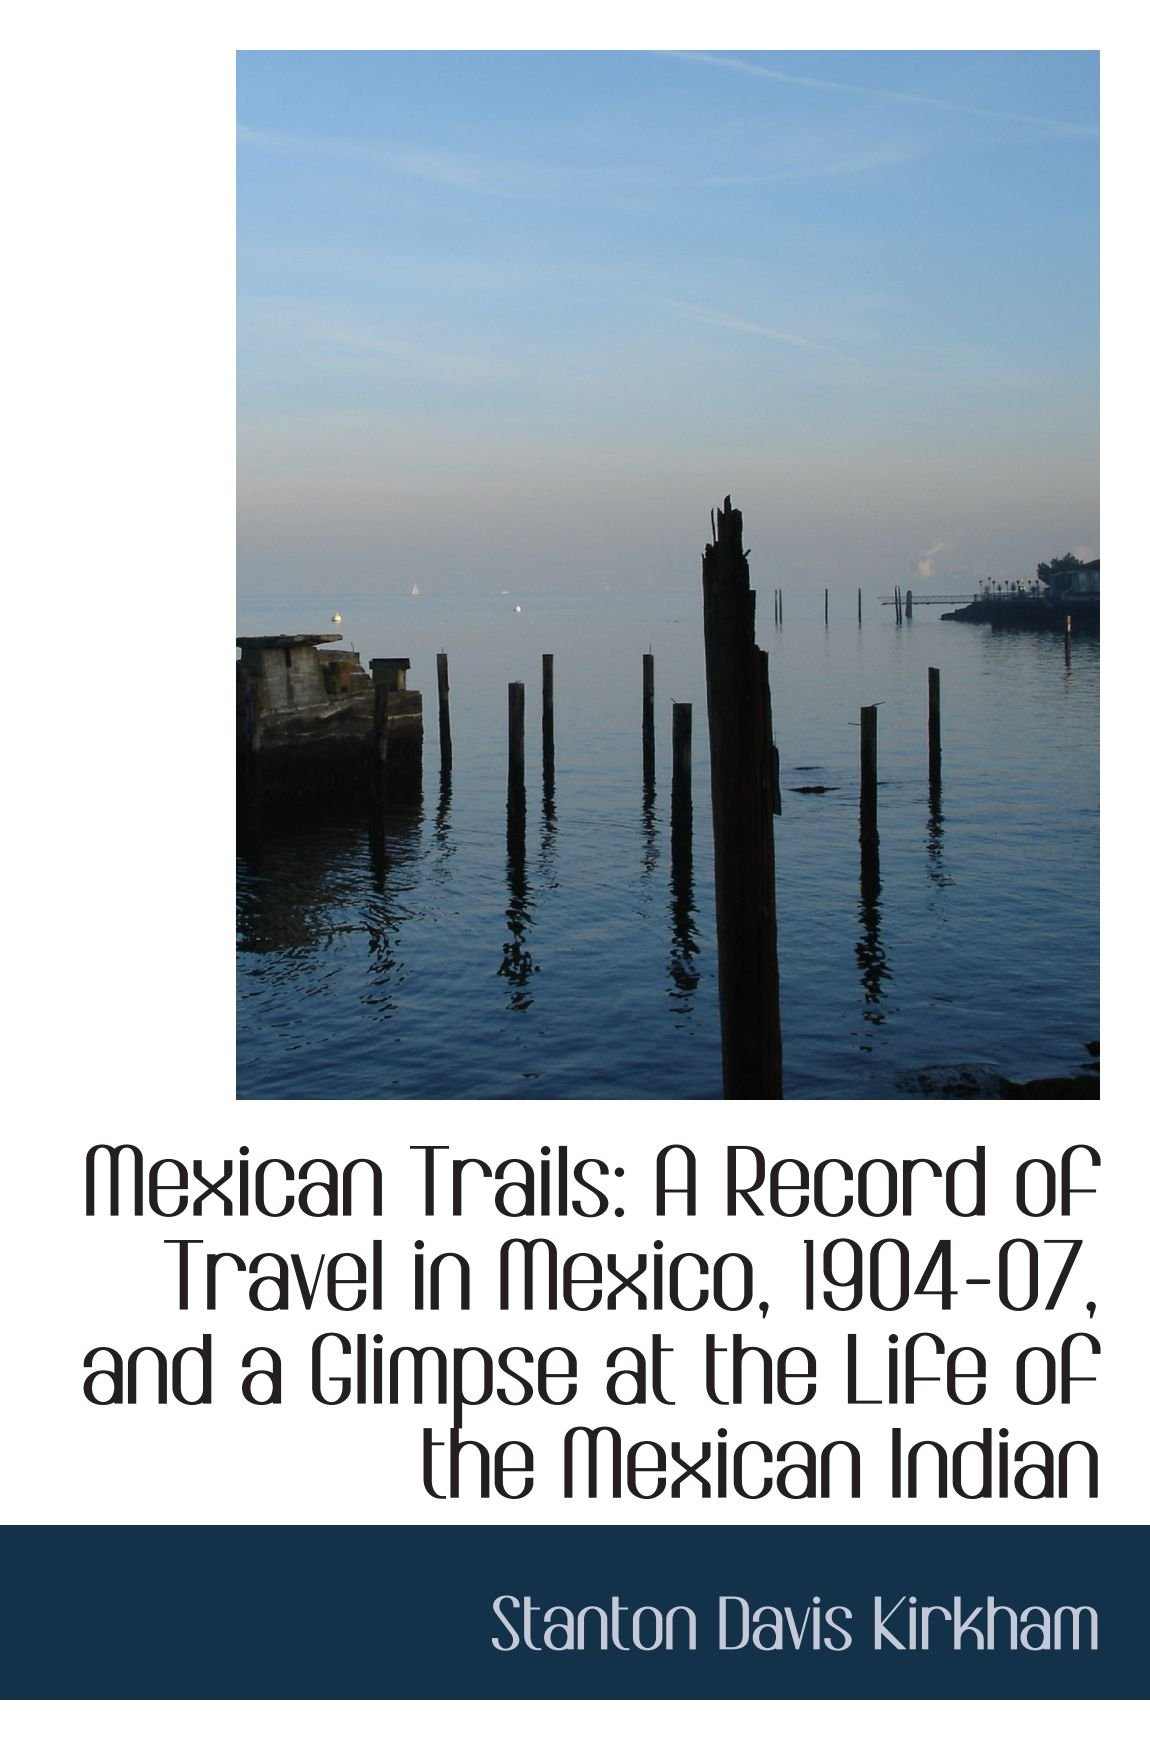 Download Mexican Trails: A Record of Travel in Mexico, 1904-07, and a Glimpse at the Life of the Mexican Indi pdf epub